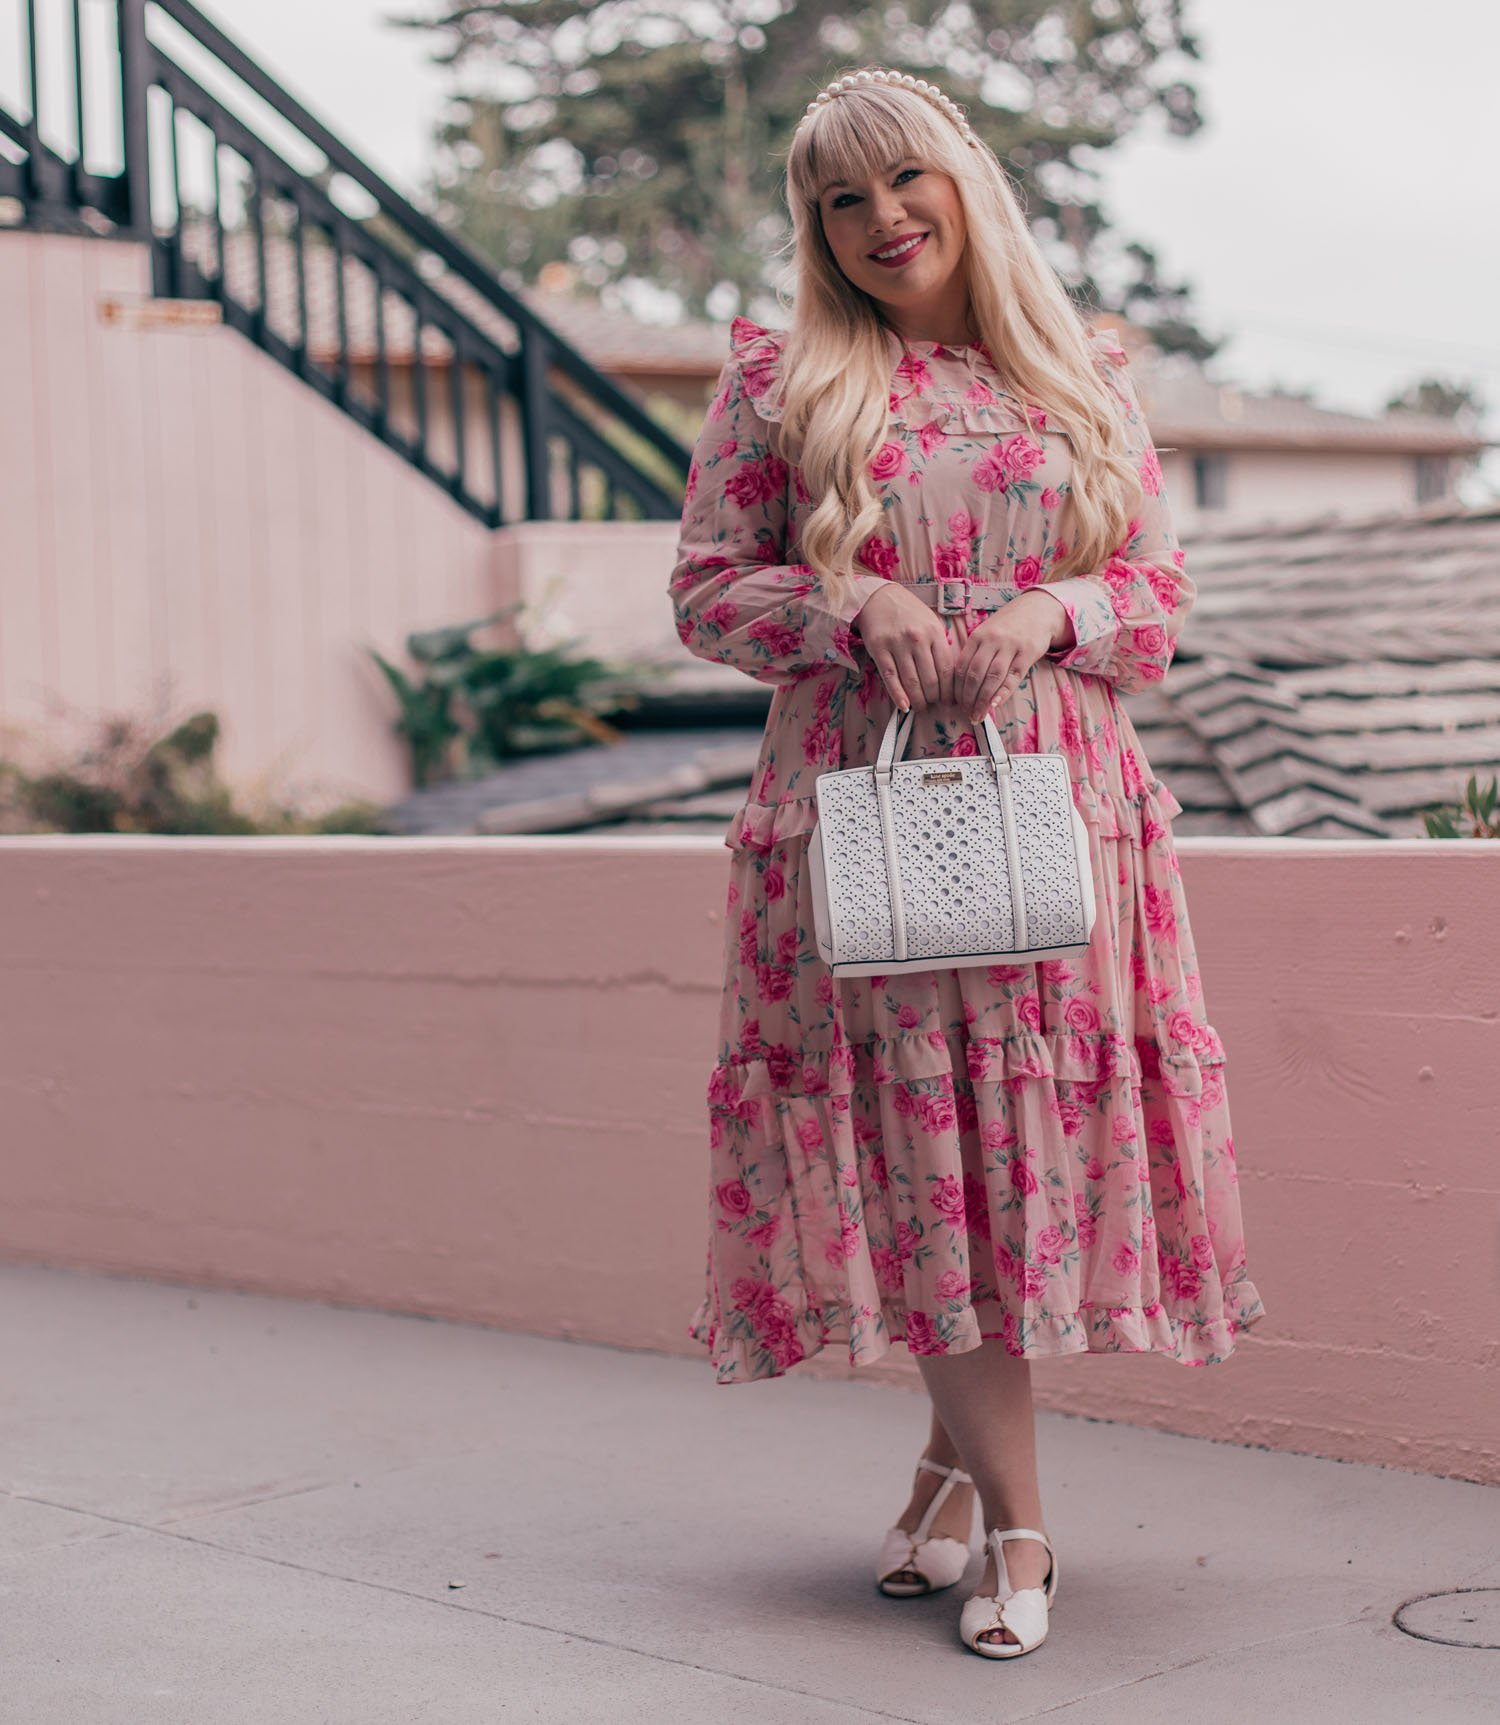 Feminine Fashion Blogger Elizabeth Hugen of Lizzie in Lace shares how to wear the statement collar trend along with a summer outfit including a pink floral chicwish dress and charlie stone vintage inspired shoes